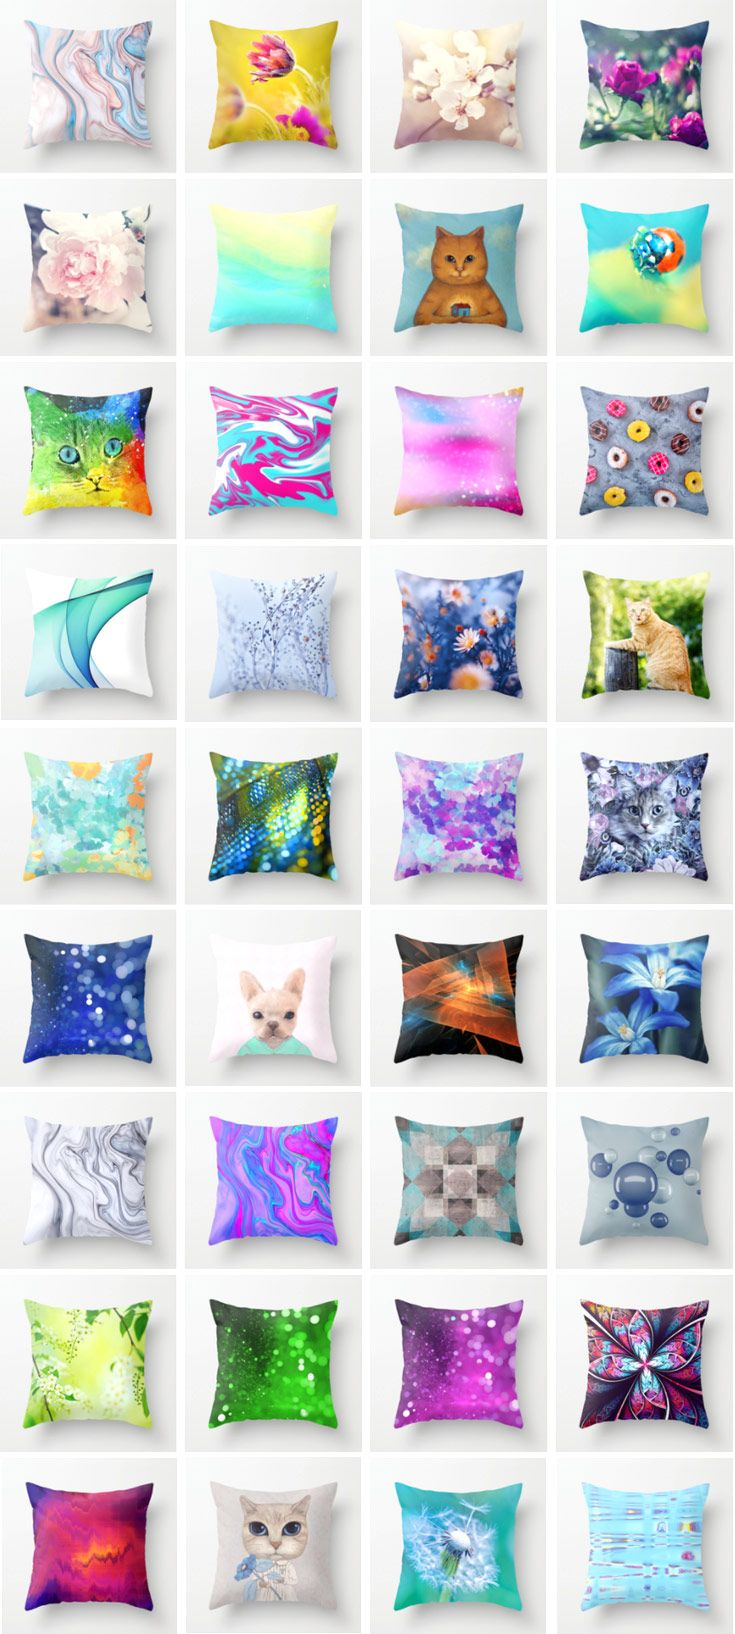 Comfortable THROW PILLOWS on @society6 with my Fine Art Photography for Your Home Decor. All Pillows Available here: https://society6.com/oxygen/pillows?page=1  by @photography_art_decor #OksanaAriskina #Artworks #FineArtPhotography #Cushion #Cosy #Abstract #Other